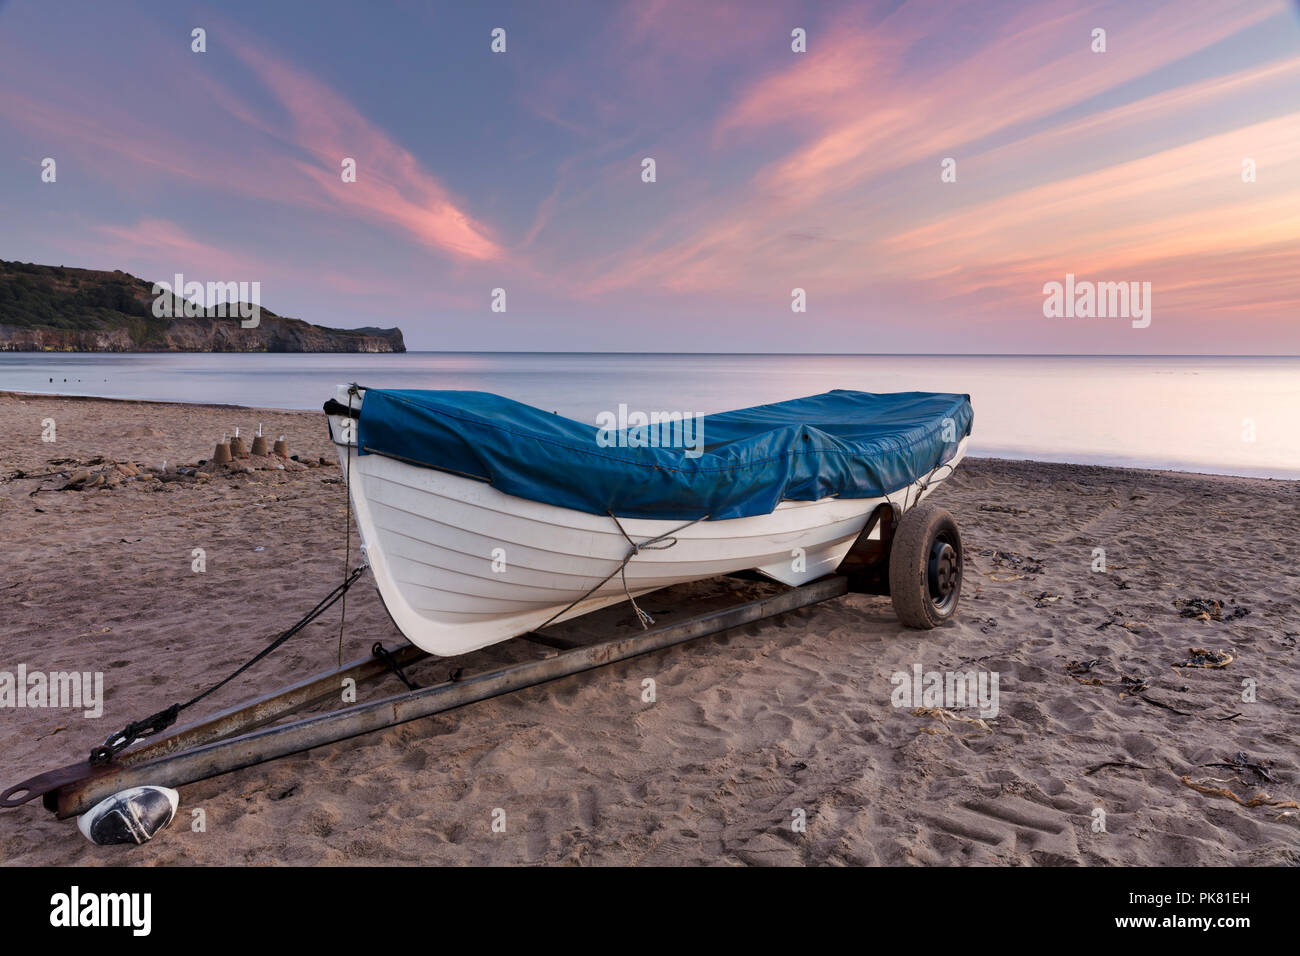 Dawn breaking over Sandsend beach near Whitby on the North Yorkshire coast, England. Stock Photo